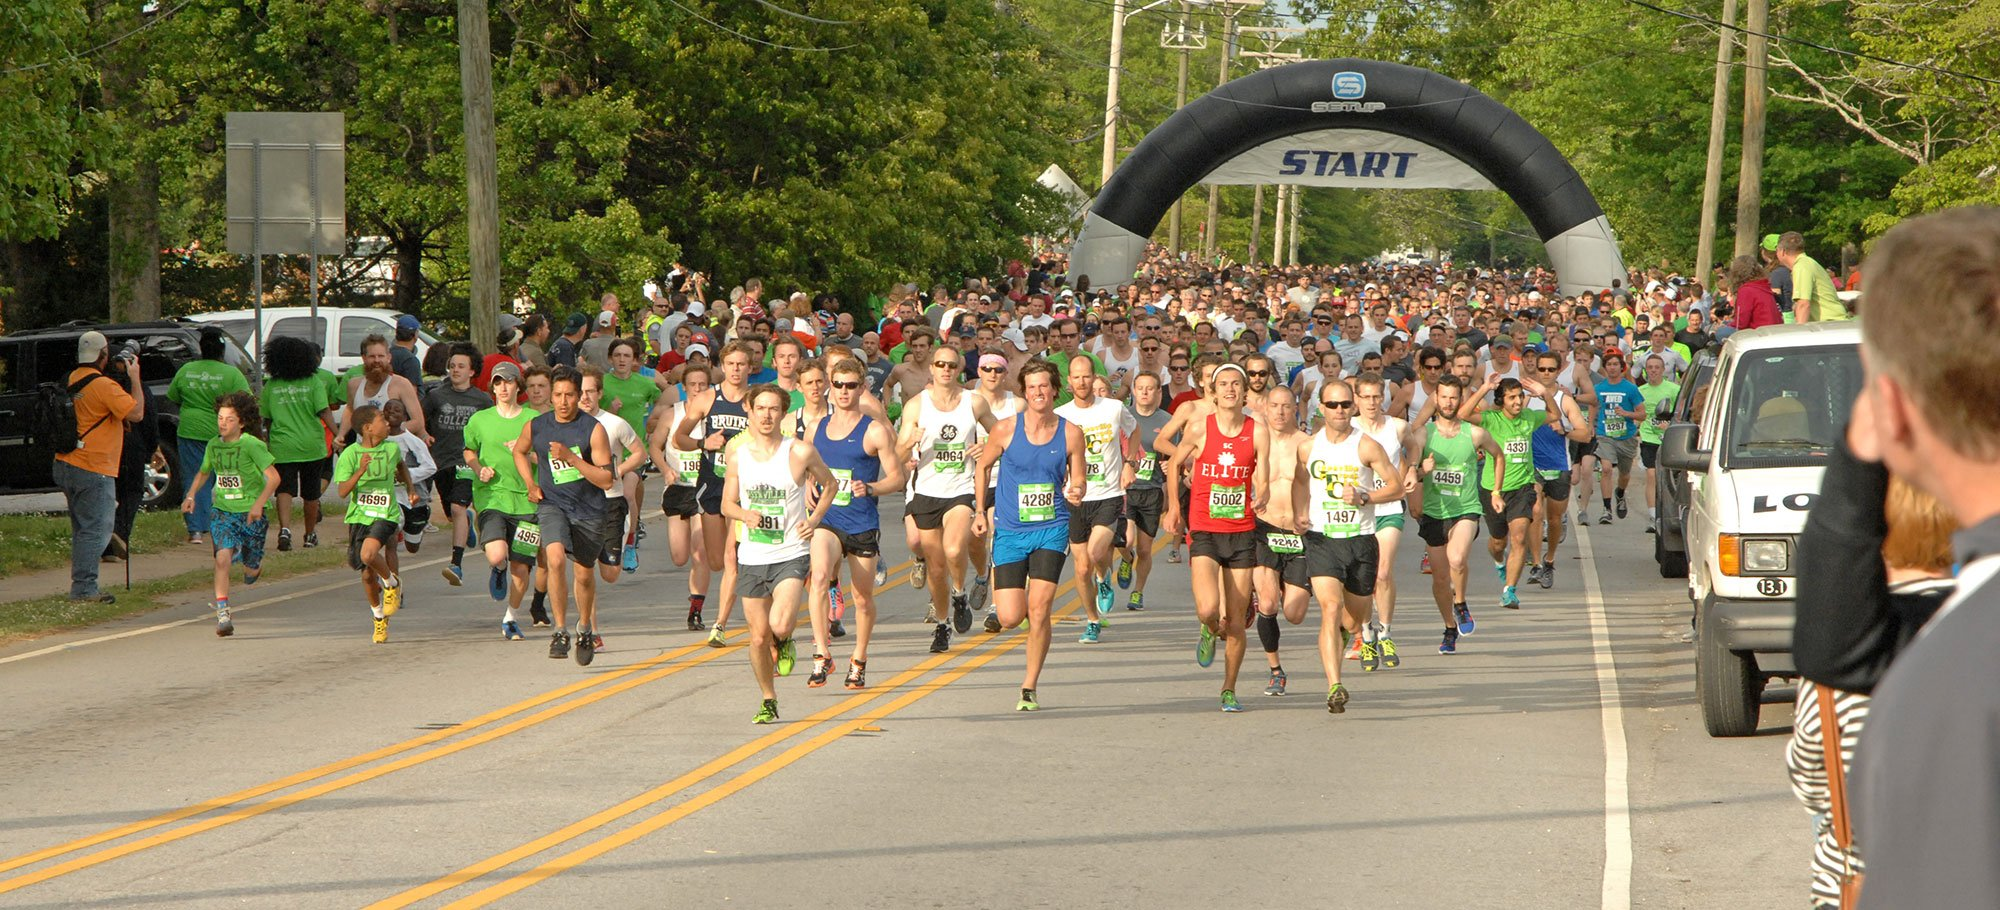 2016 GHS Swamp Rabbit 5K (Source: GHS)